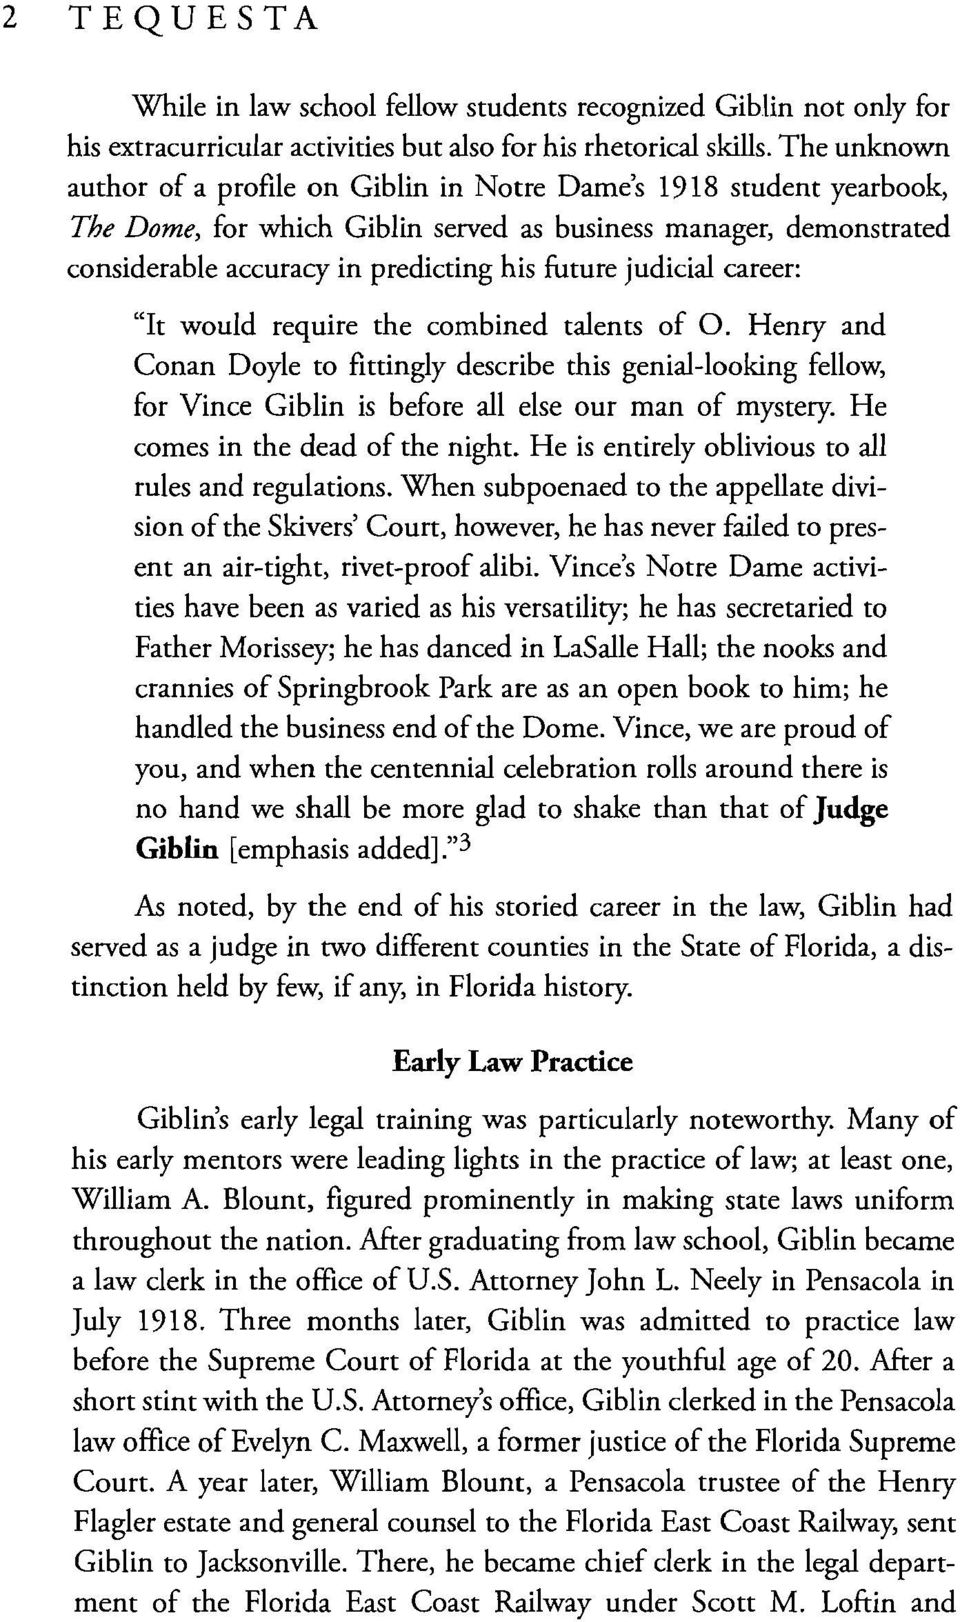 "judicial career: ""It would require the combined talents of O. Henry and Conan Doyle to fittingly describe this genial-looking fellow, for Vince Giblin is before all else Out man of mystery."